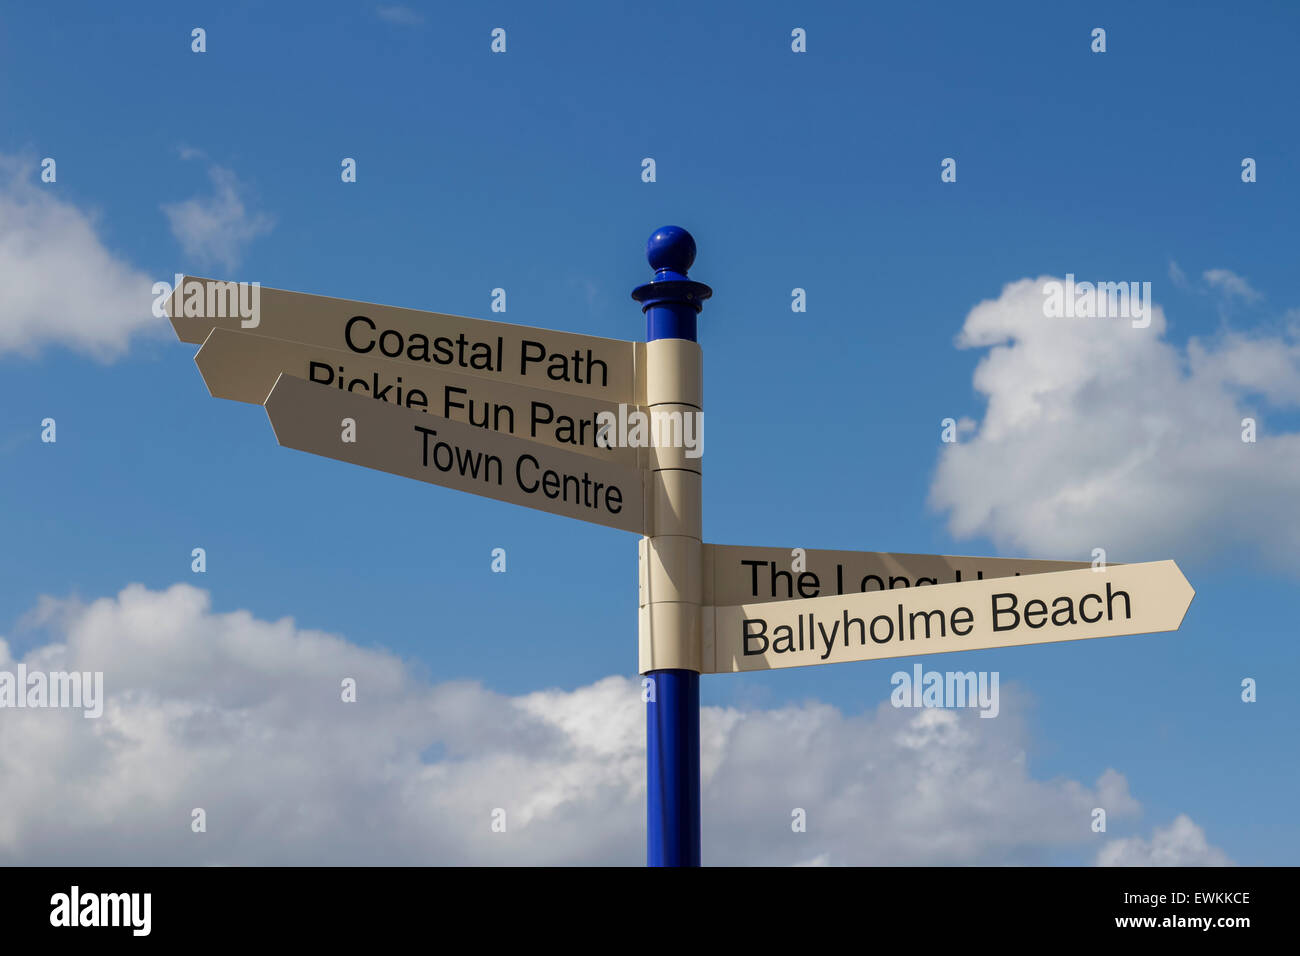 Sign in Bangor, Co. Down giving directions to local points of interest - Stock Image